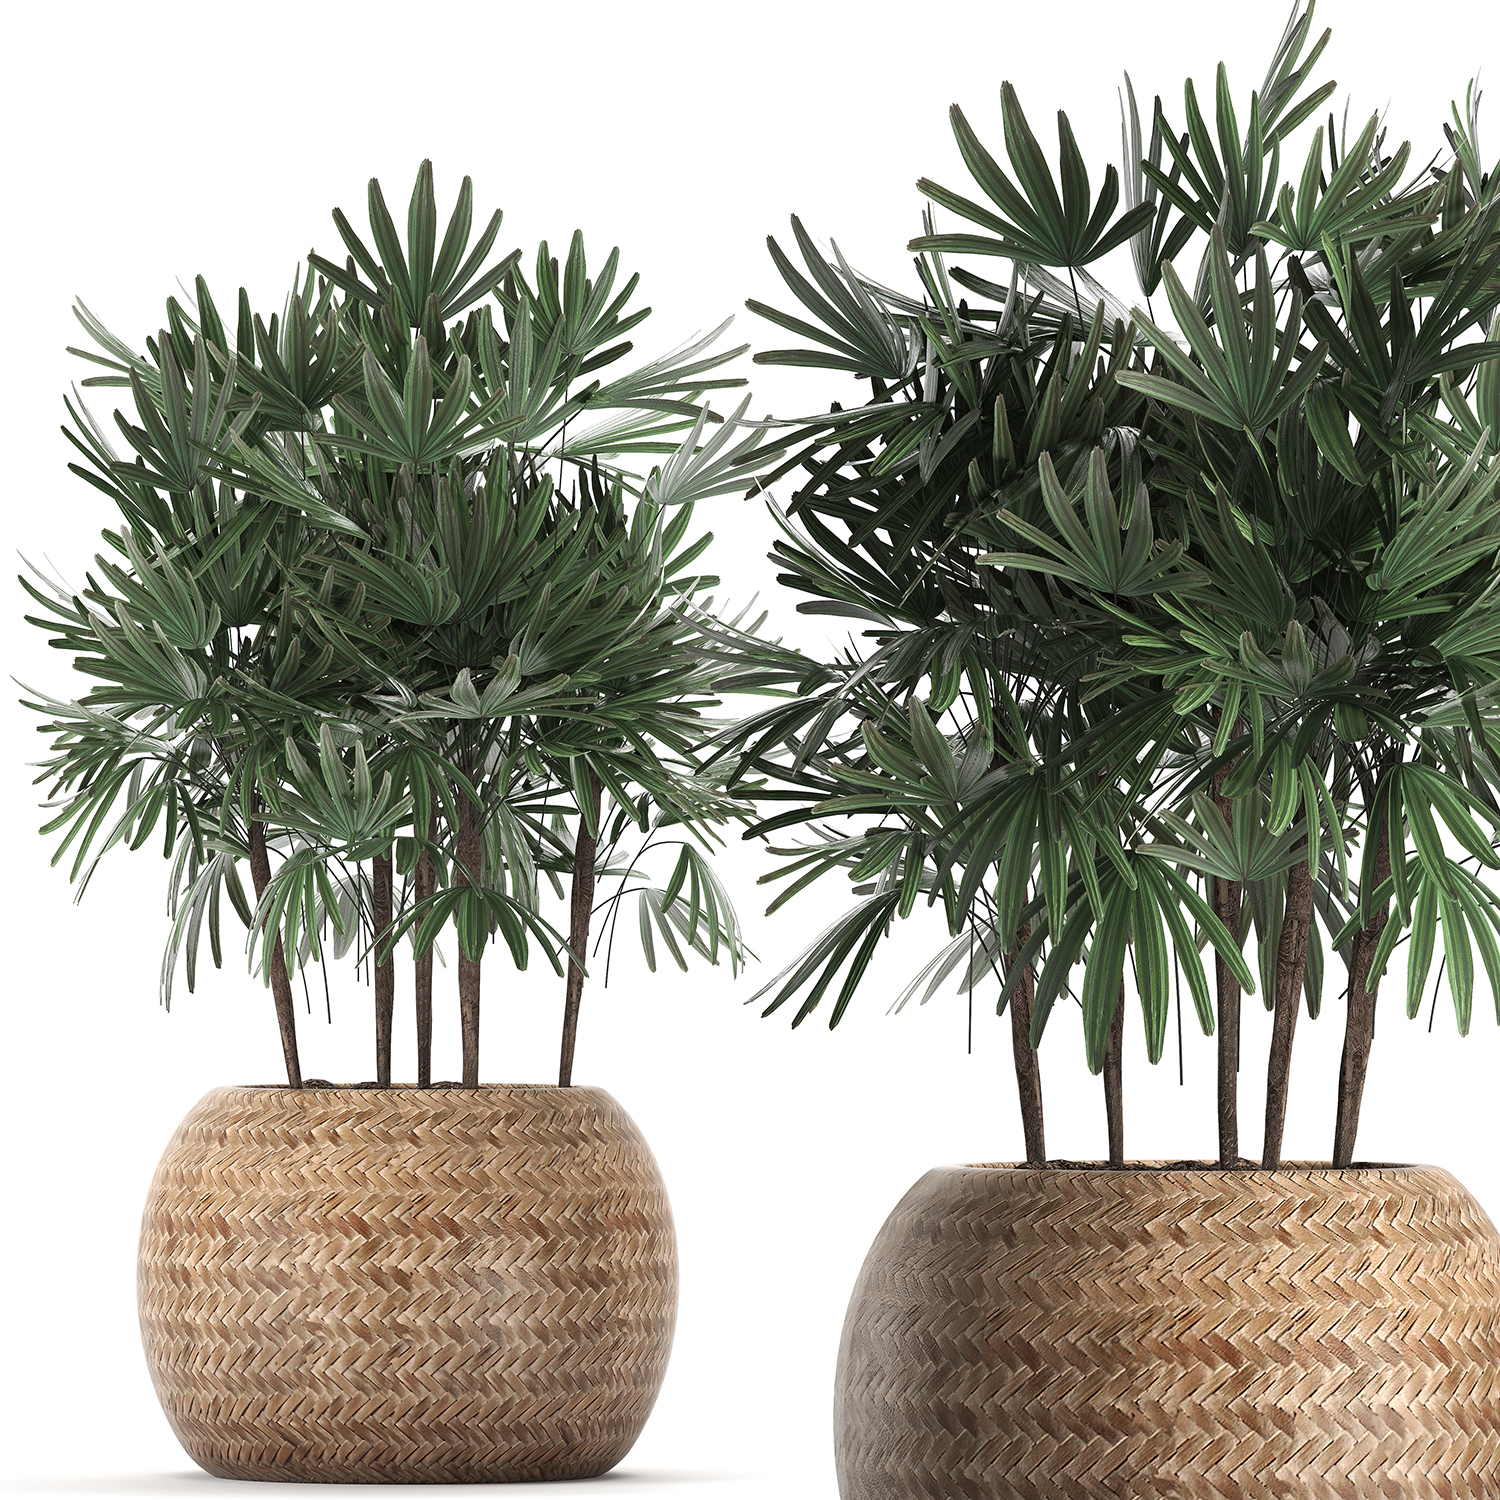 Decorative palm tree in a pot 416 on house plant schefflera arboricola, house plant palm care, bamboo tree, house plant flower, house plant orchid, house plant swedish ivy, yucca house plant tree, house plant arrow, house plant rubber plant, house plant grass, house plants that look like trees, low maintenance indoor plants tree, house plant pineapple, house plant house, house plant with green leaves and white, corn house plant tree, house plant umbrella tree, house plant bamboo, house plant propagation, house plant pink,